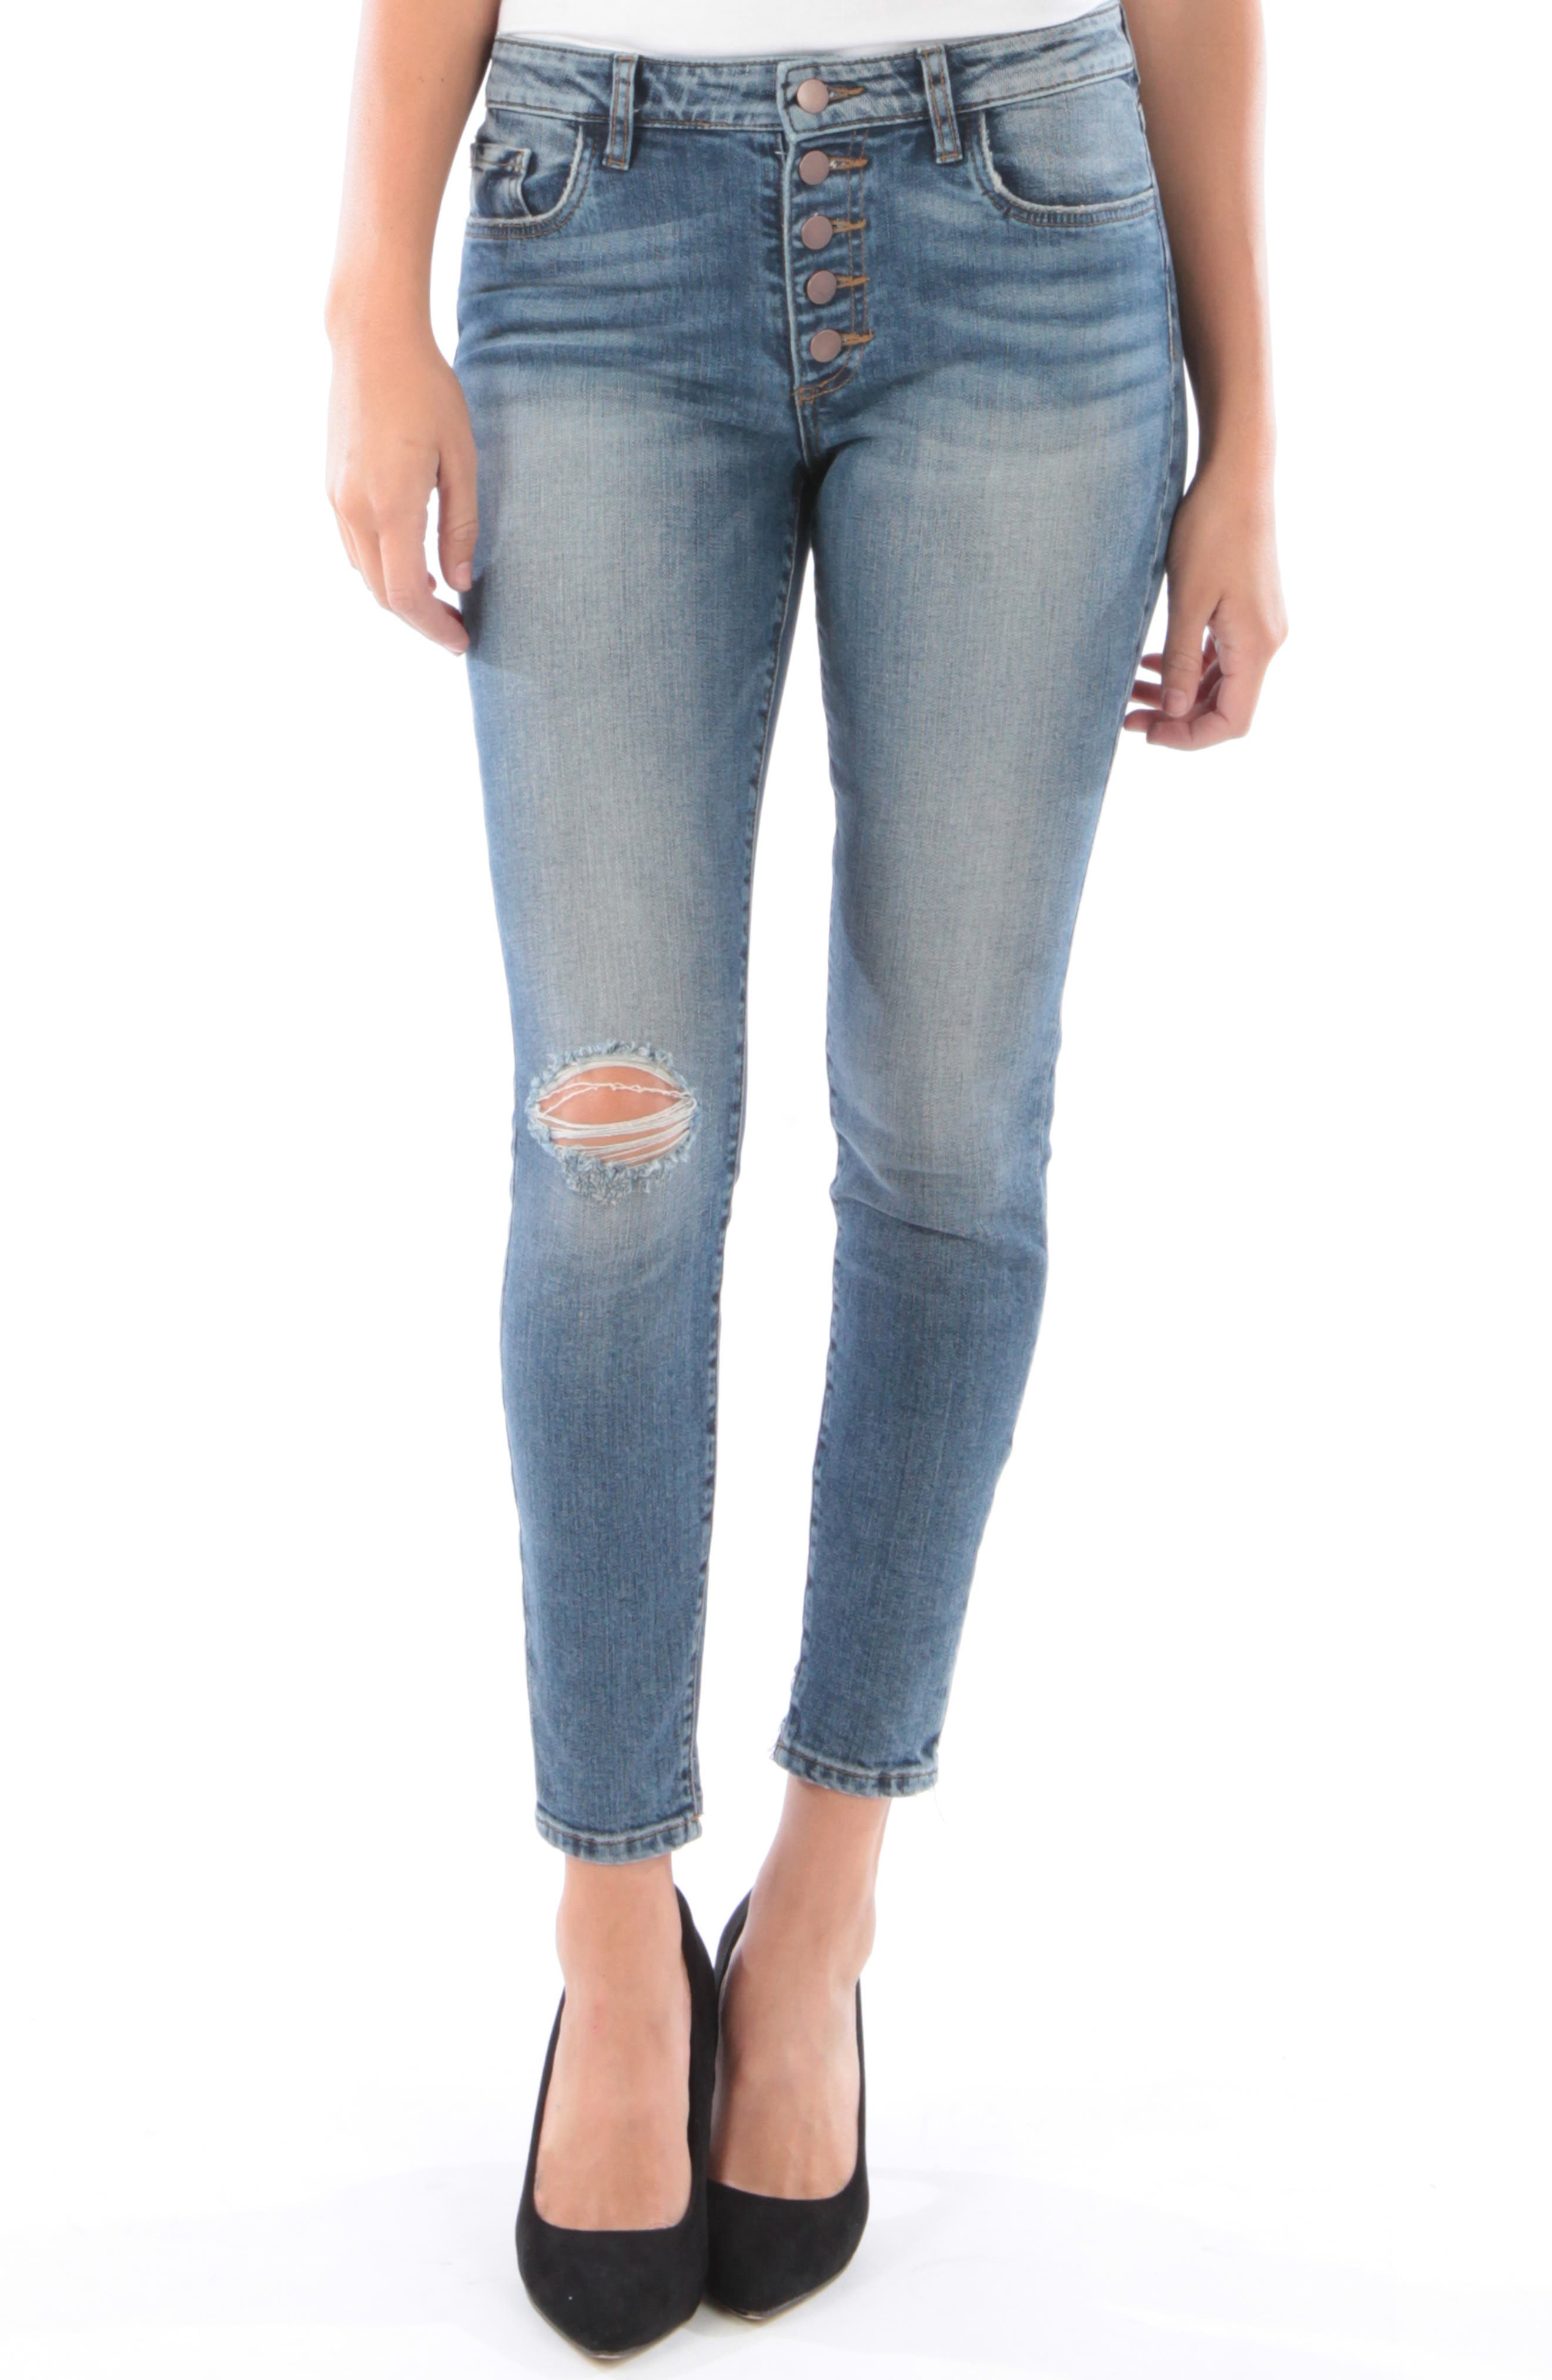 KUT FROM THE KLOTH, Donna Ripped High Waist Ankle Skinny Jeans, Main thumbnail 1, color, 402